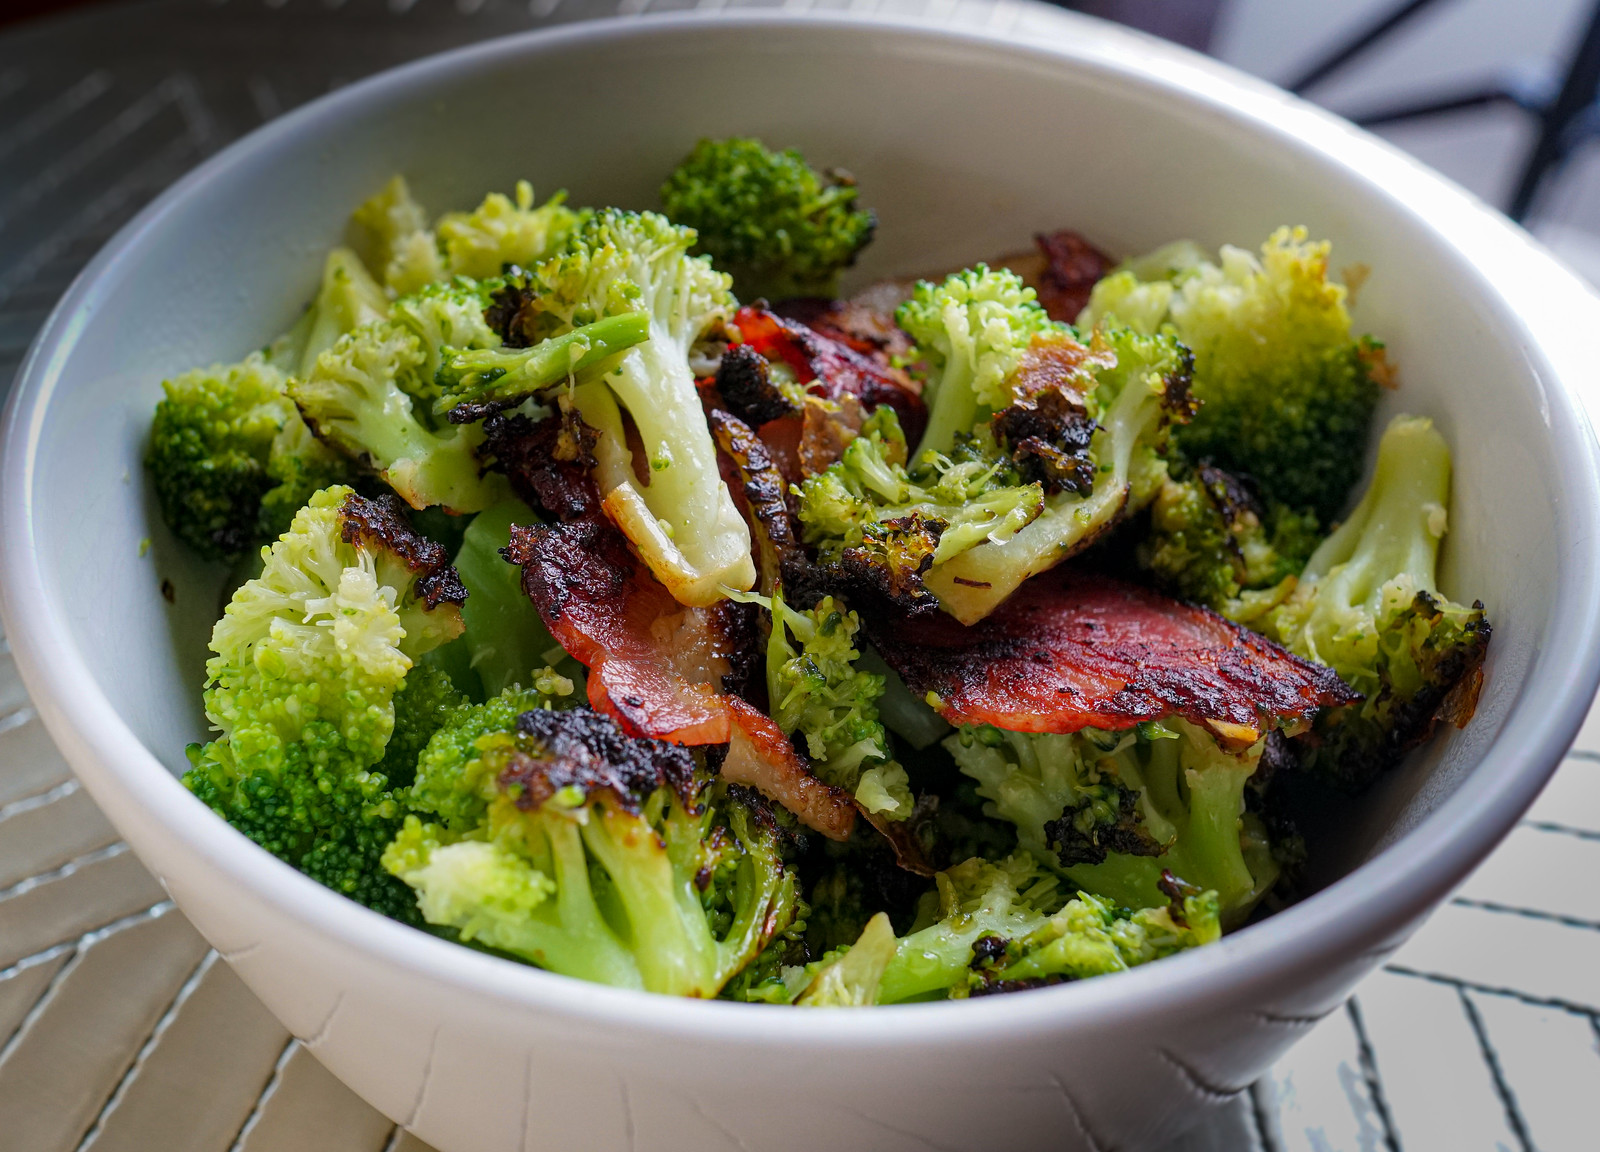 Photo Friday/Recipe: Broccoli and Bacon Stir Fry - Plants, an ideal vehicle for fat